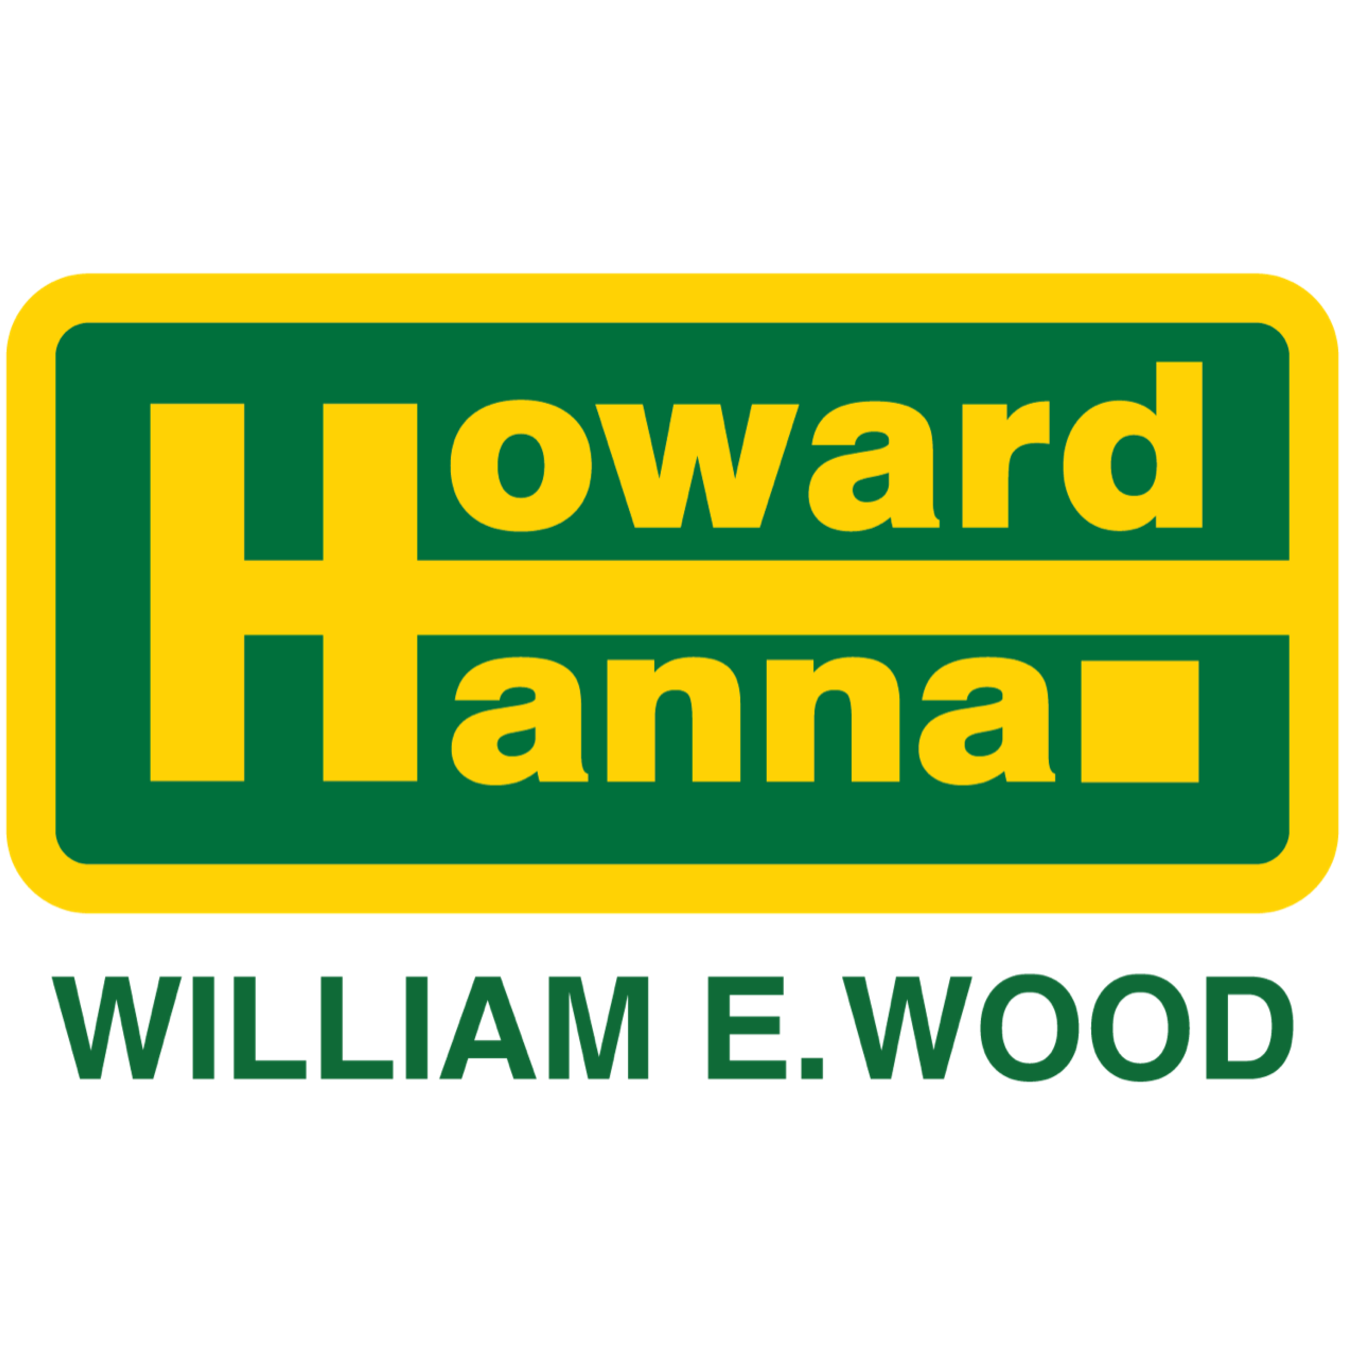 Mike Narlis - Howard Hanna - William E. Wood Realtors